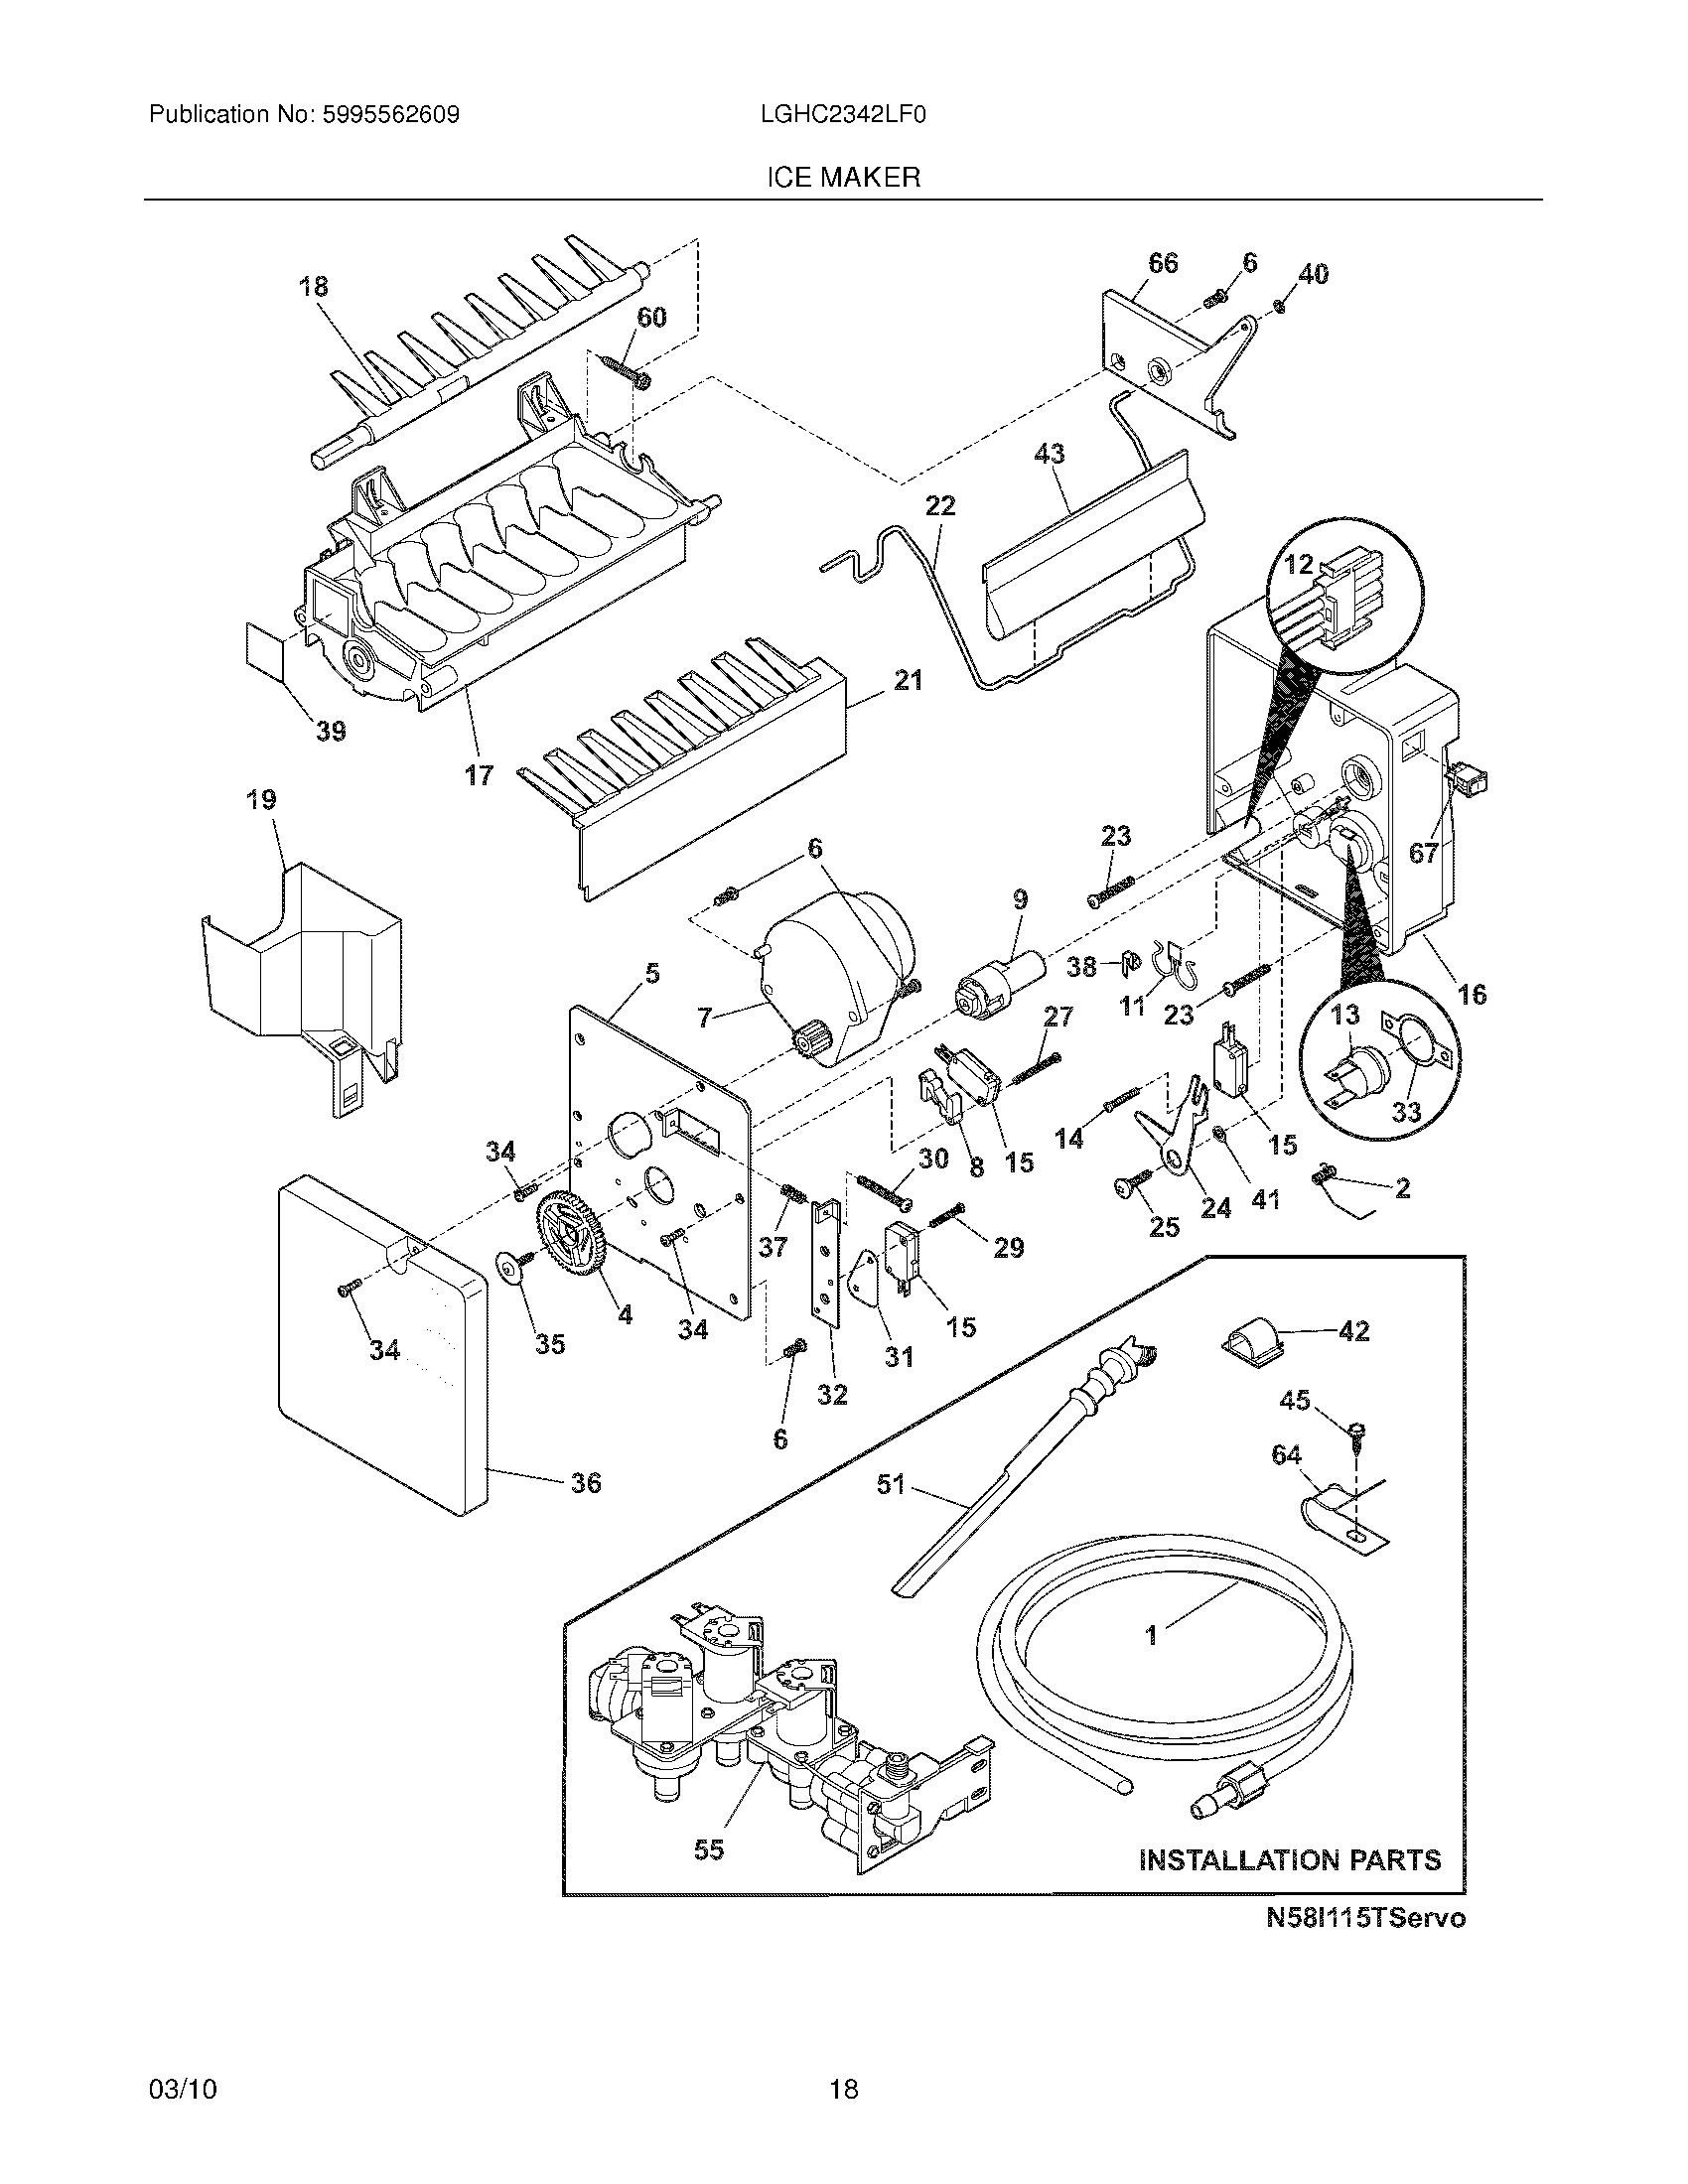 ElectroluxImg_19000101 20150717_00134104?width=1000 harley 12 pin wiring harness,Perko Wiring Harness